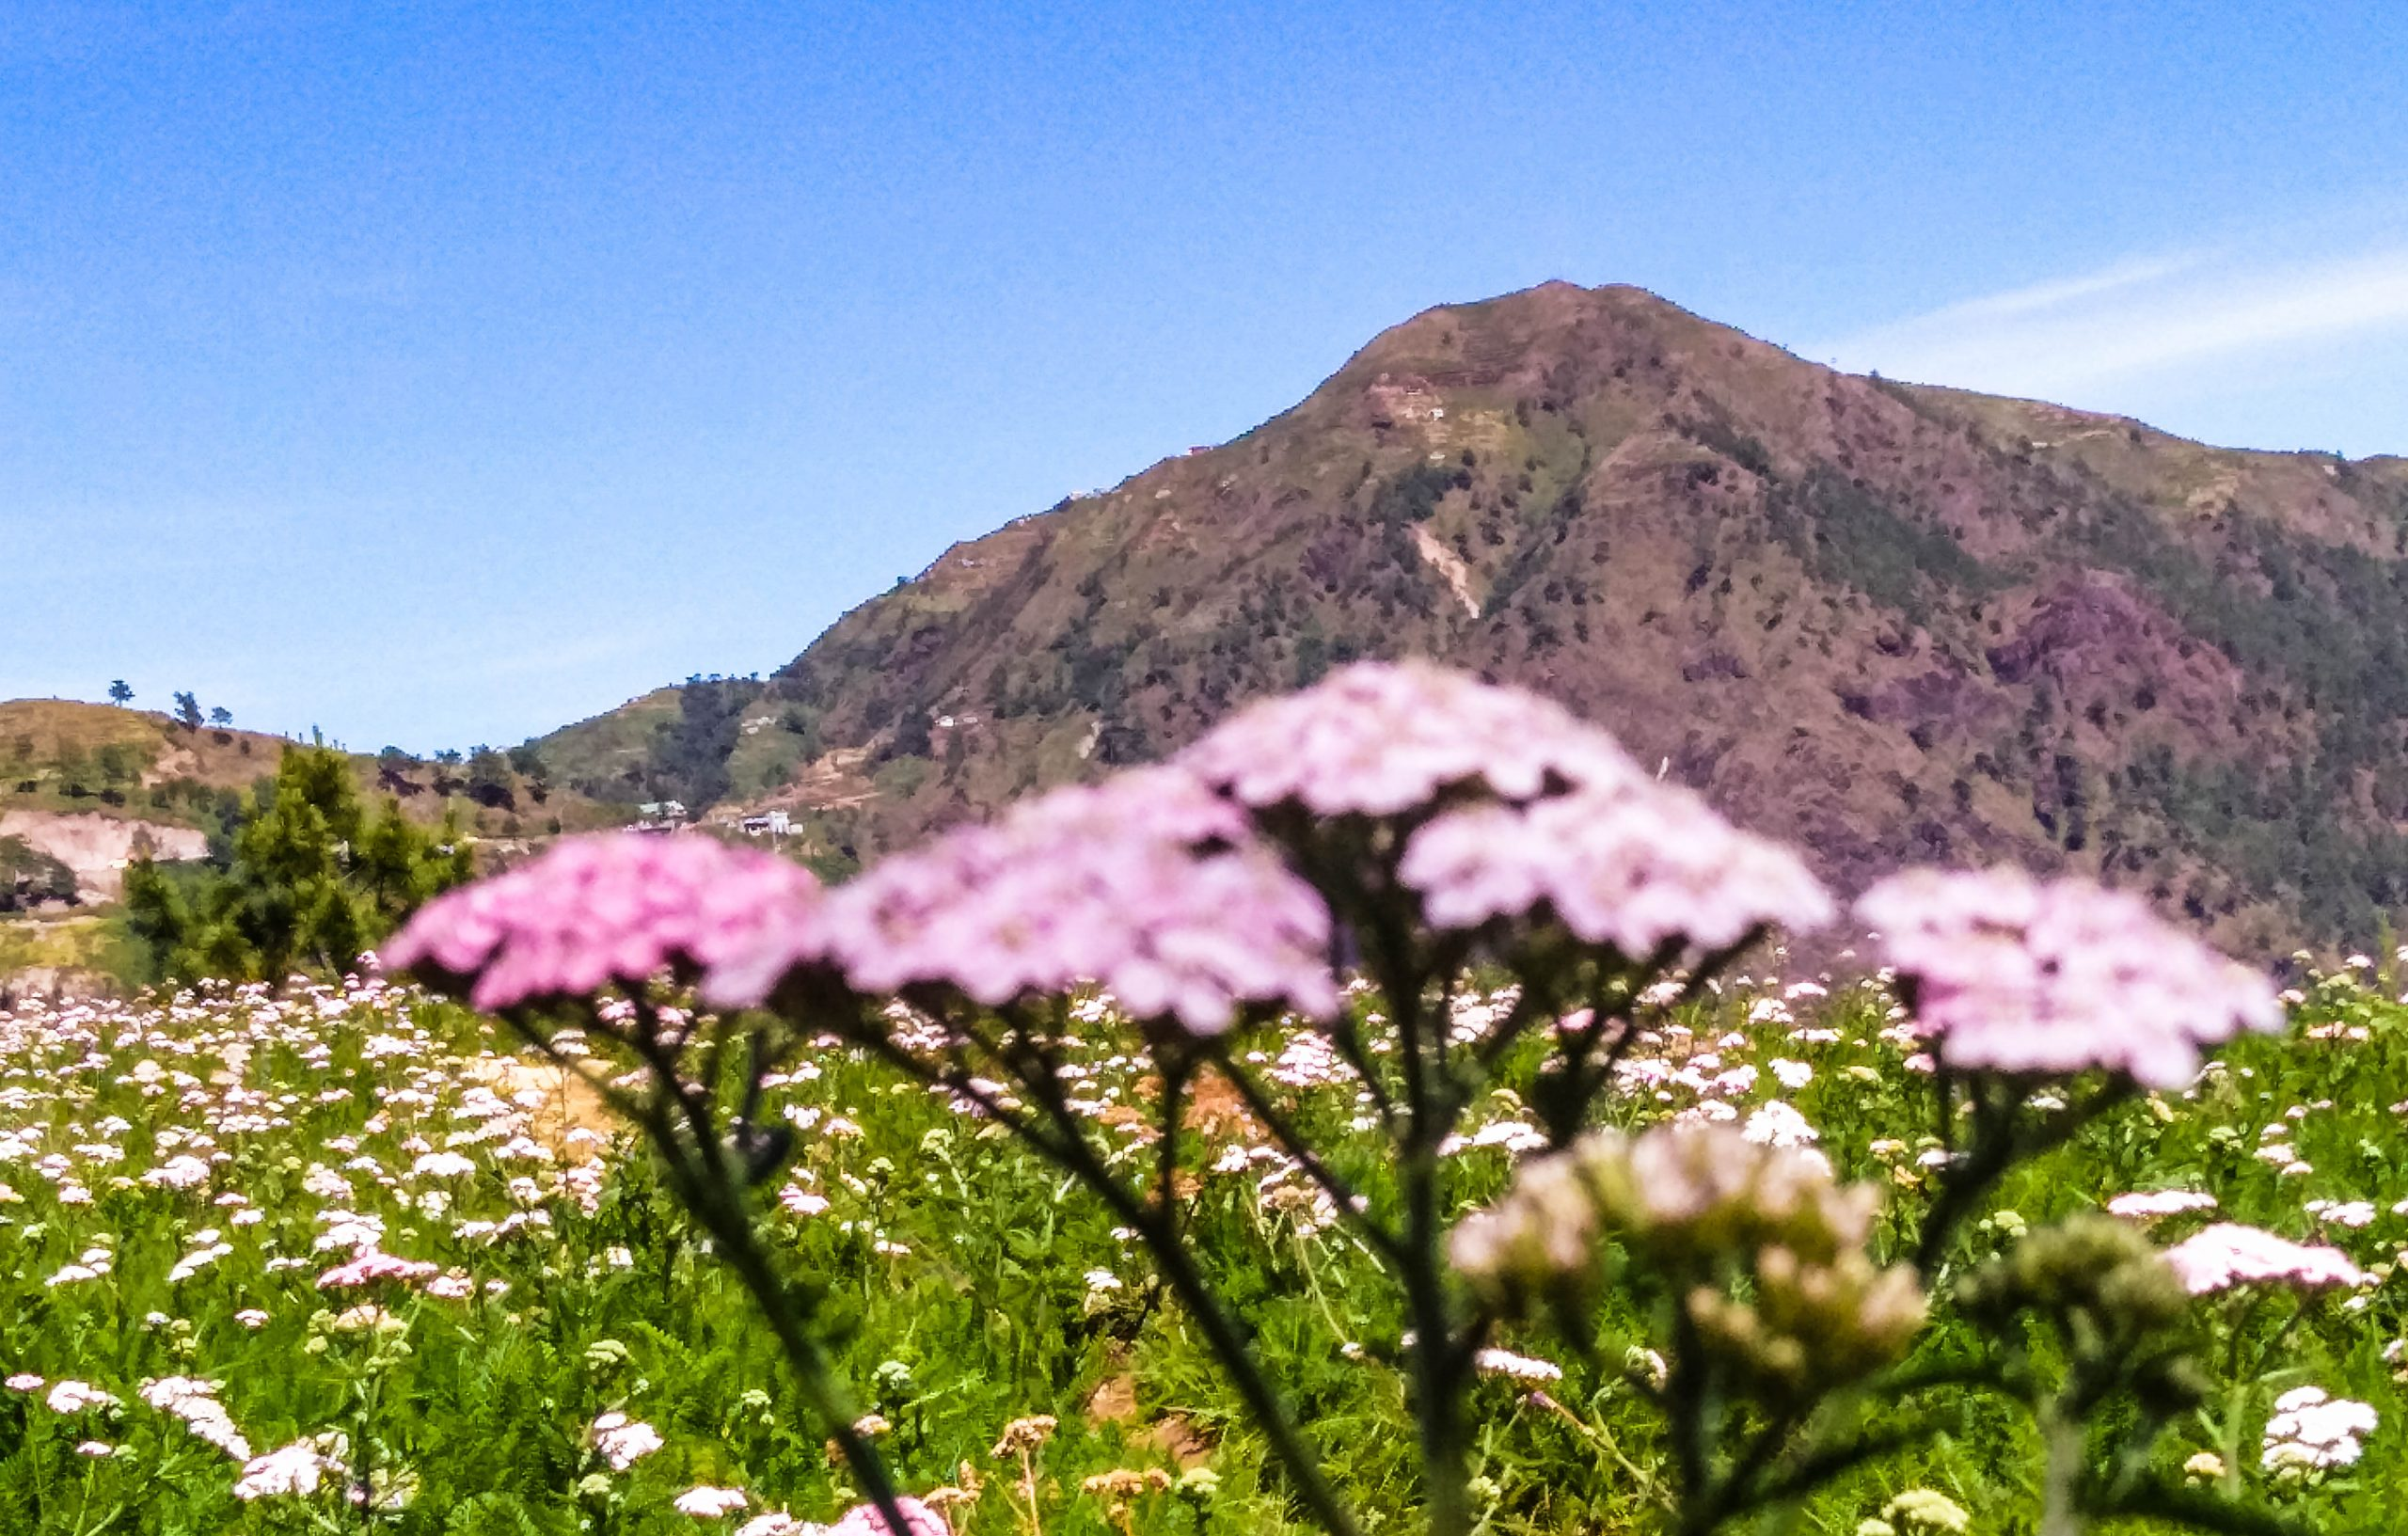 A photo of pink flowers backdropped by a brown mountain (Mount Timbak, one of the highest mountains in the Philippines)